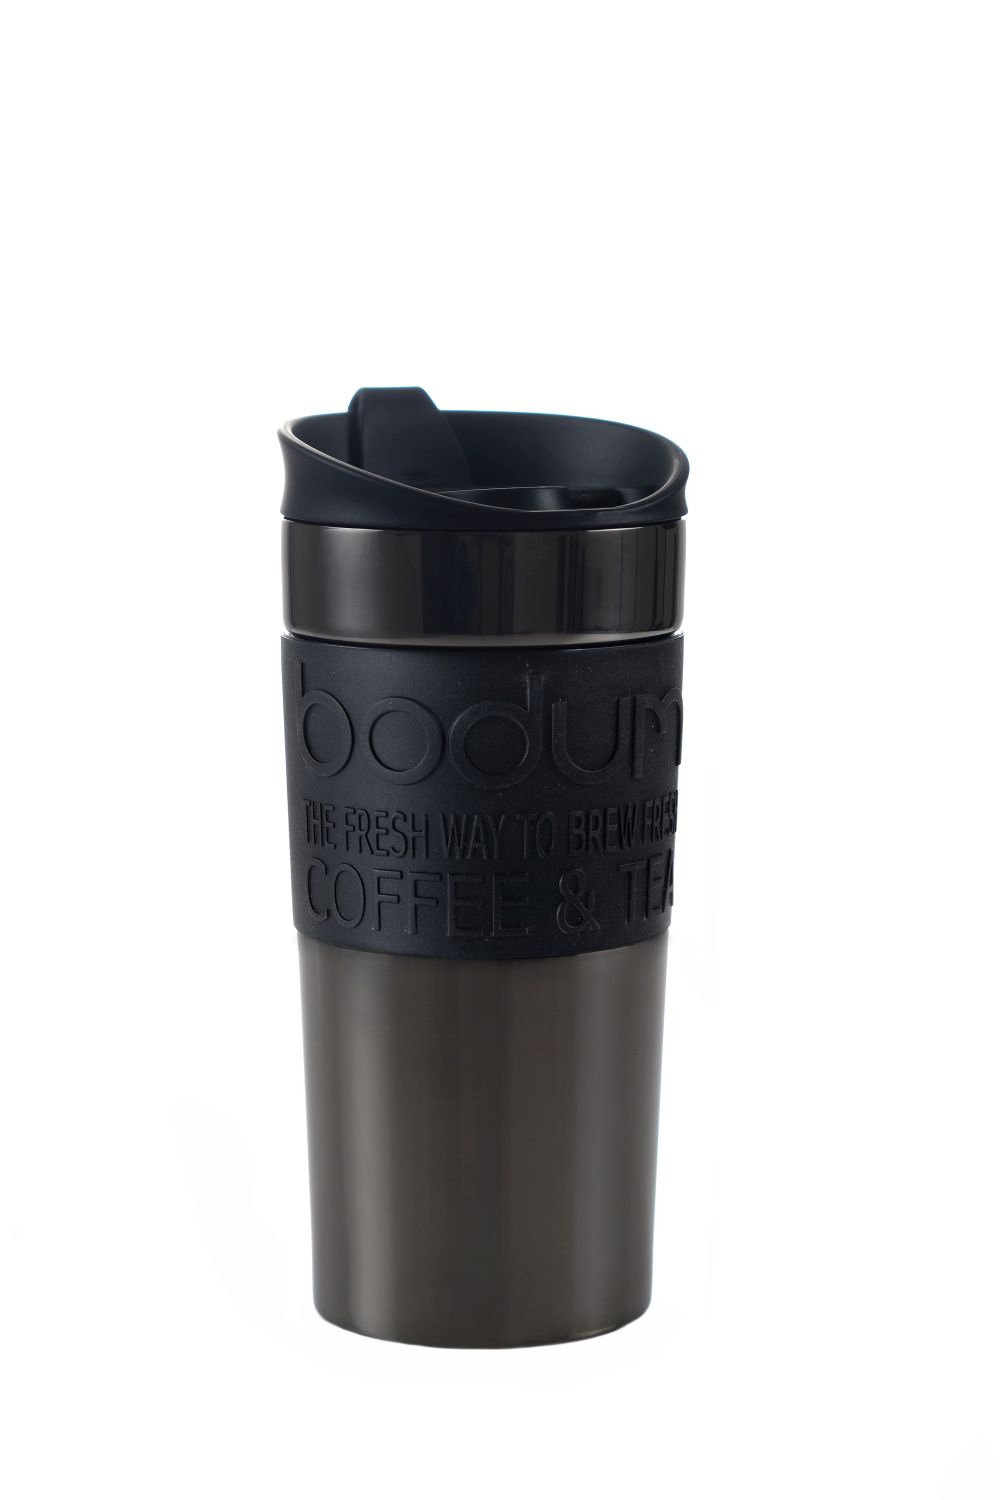 Bodum Travel Mug Spill Resistant Lid Vacuum Insulated